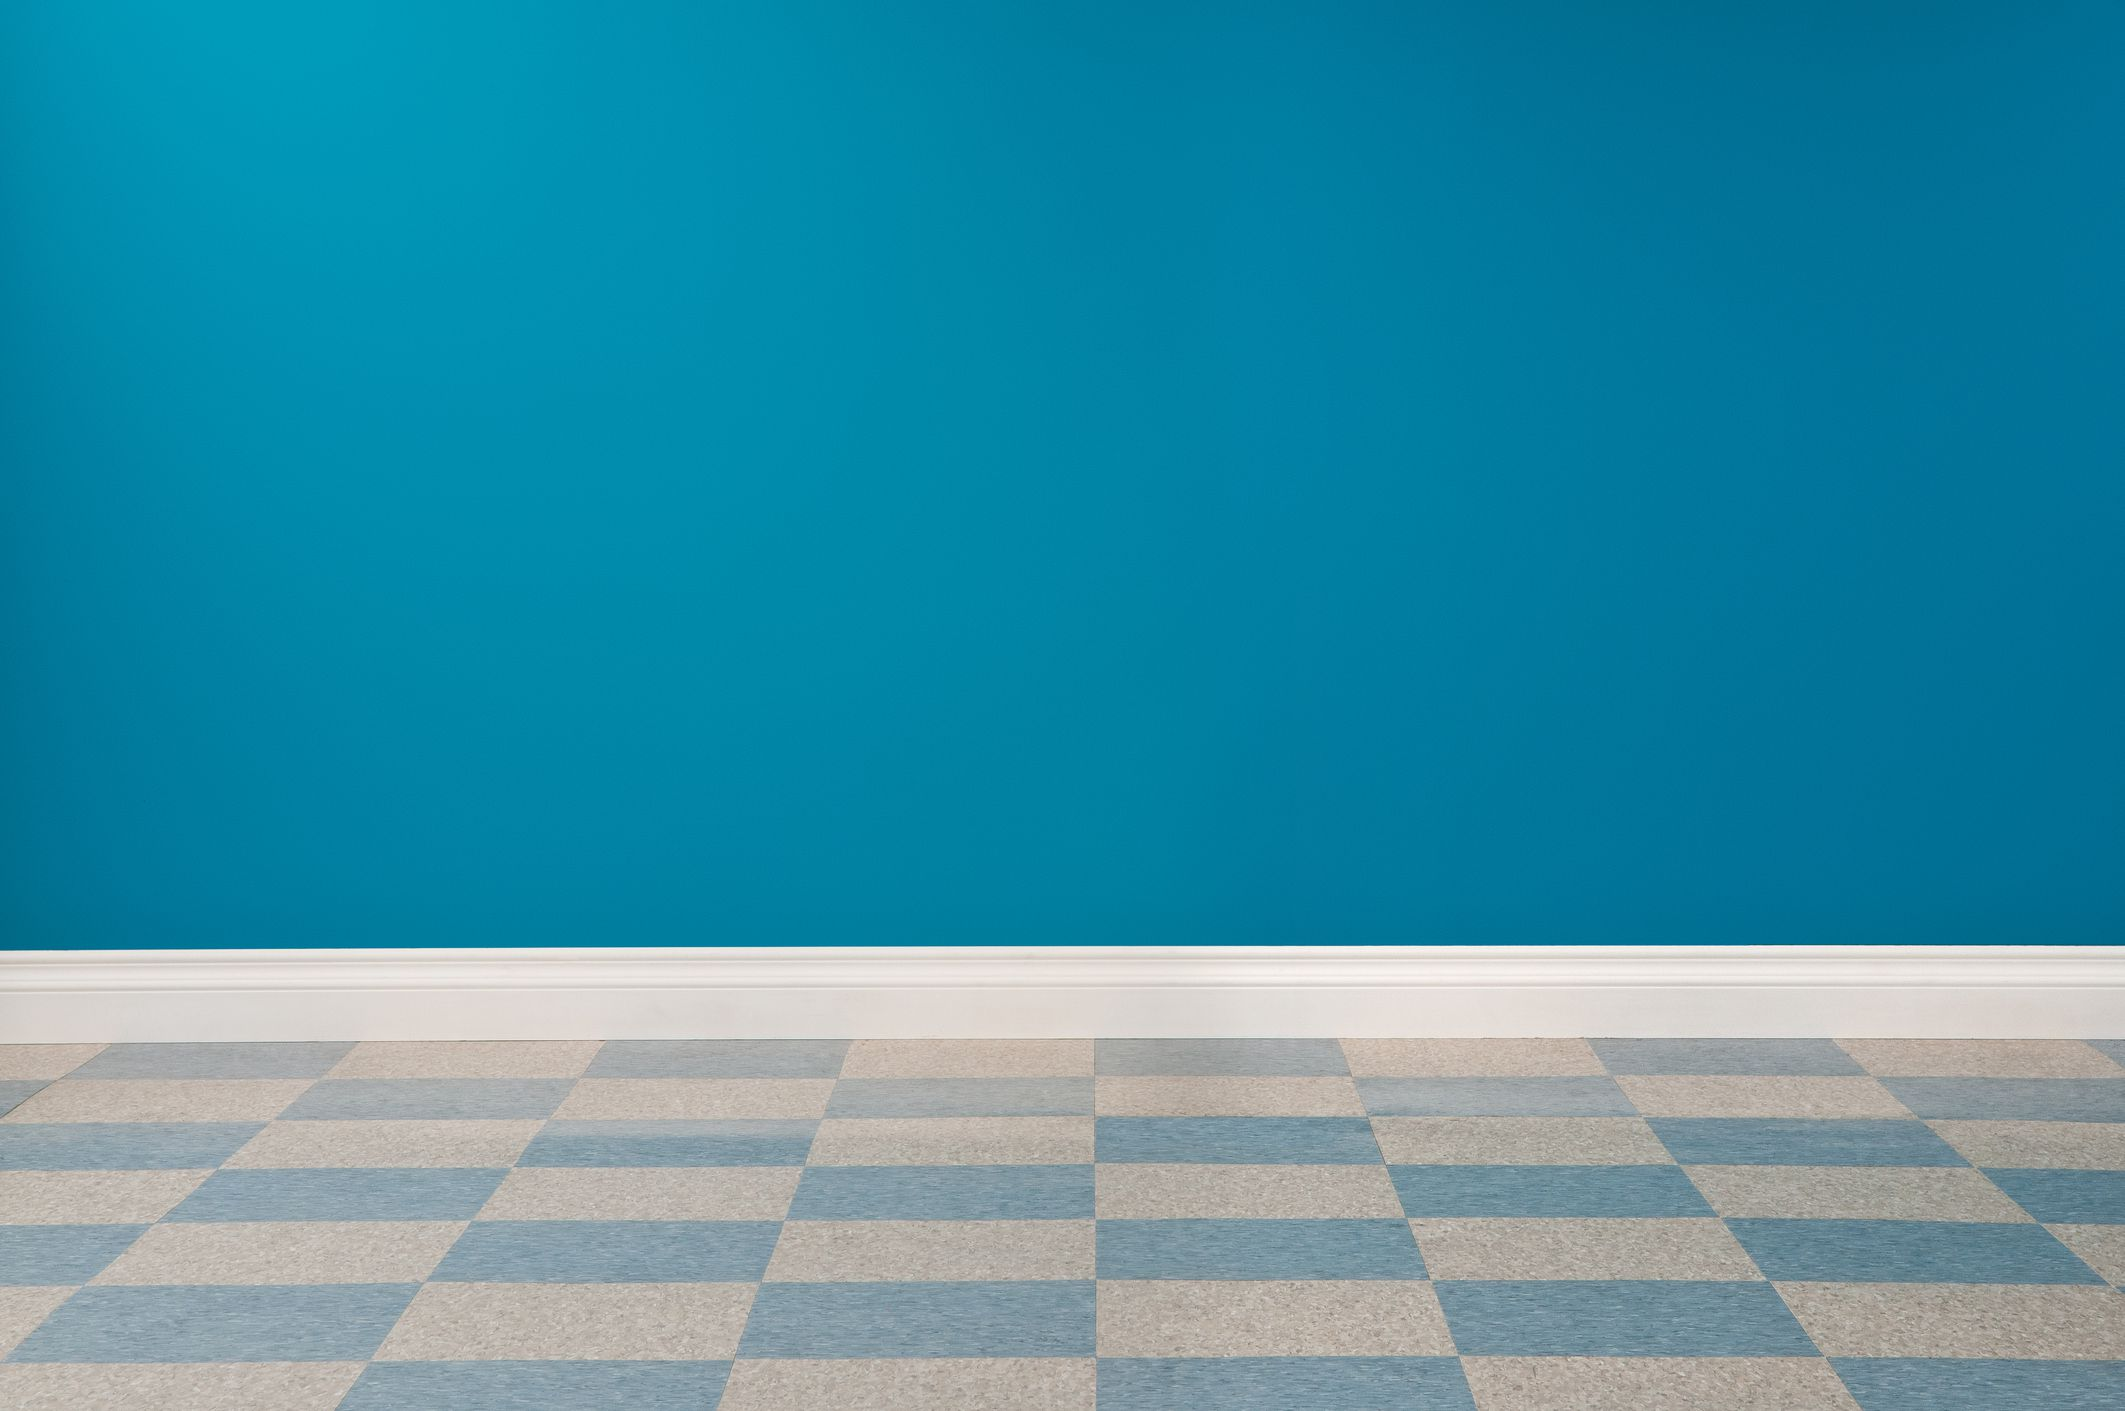 What to know about linoleum kitchen flooring linoleum flooring can save the world everything you need to know dailygadgetfo Images